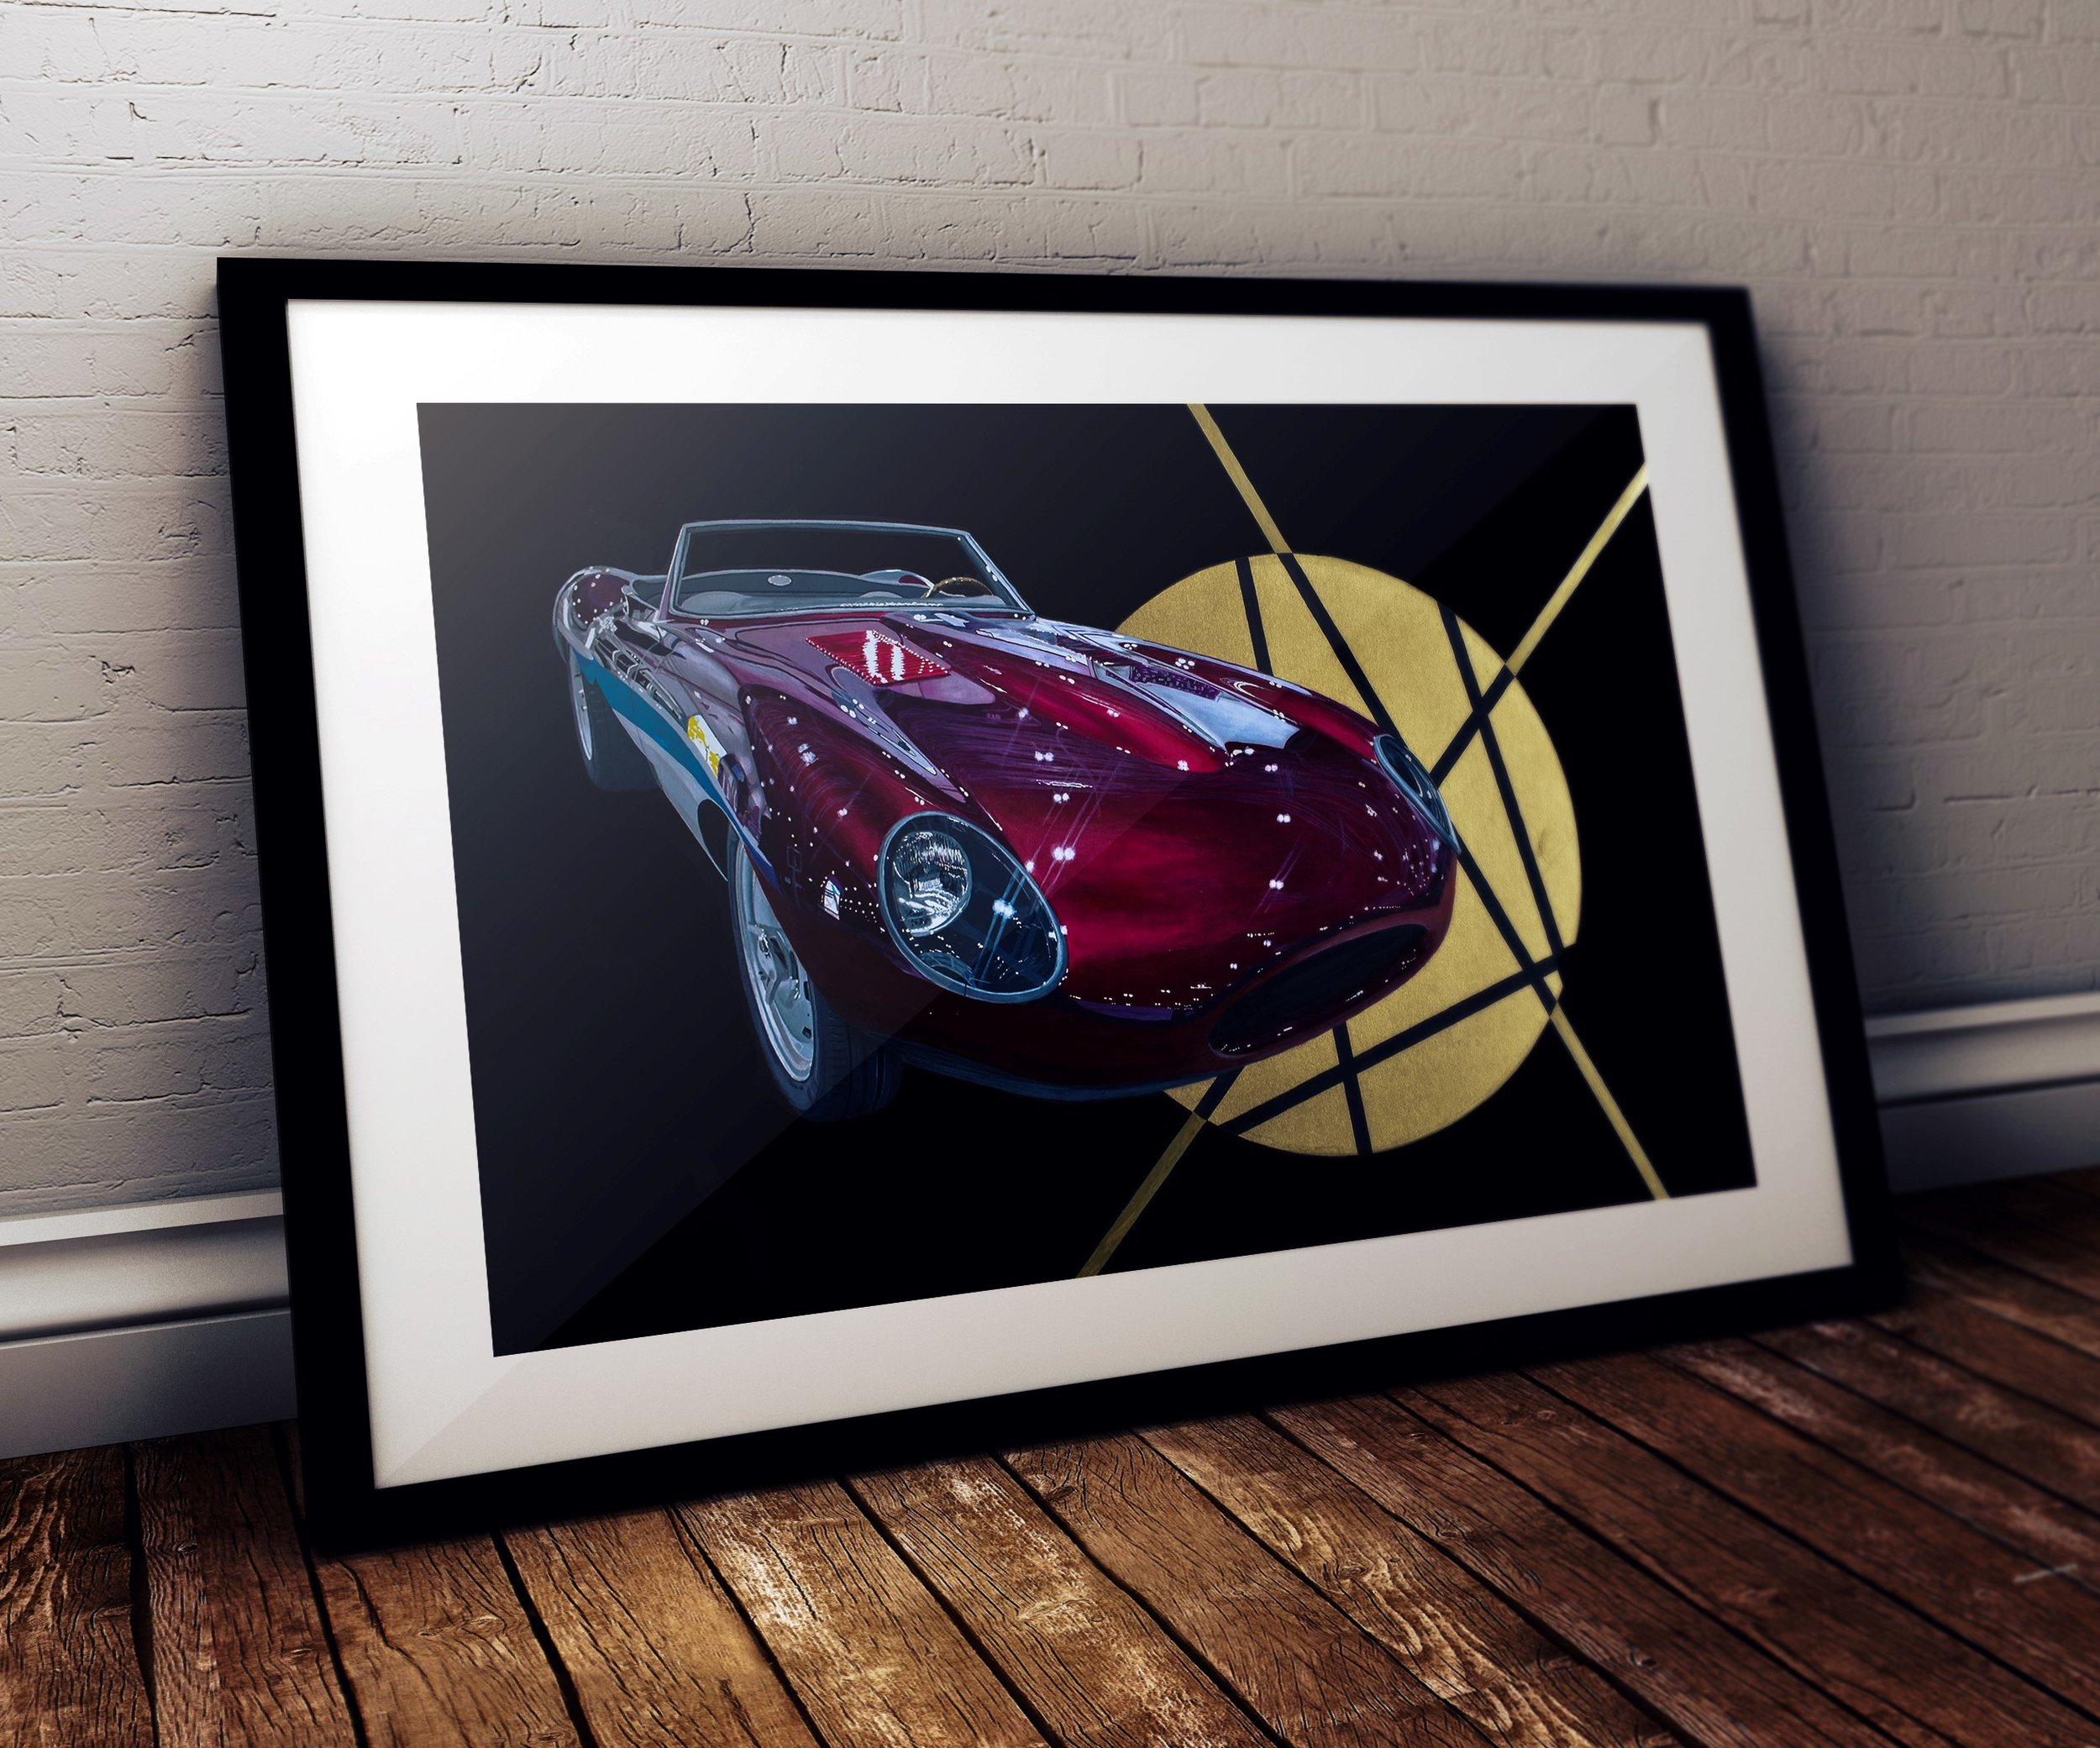 "Automotive Art - Example guide prices on standard A paper sizes. Please contact me for a tailored quote.A1 / 23.4x33.1""- Single Vehicle - £950A2 / 16.5x23.4"" - Single Vehicle £750Prices for automotive art are more expensive due to the time and complexity involved.Custom sizes available. Please contact me to discuss.ian@iansalmonart.com"